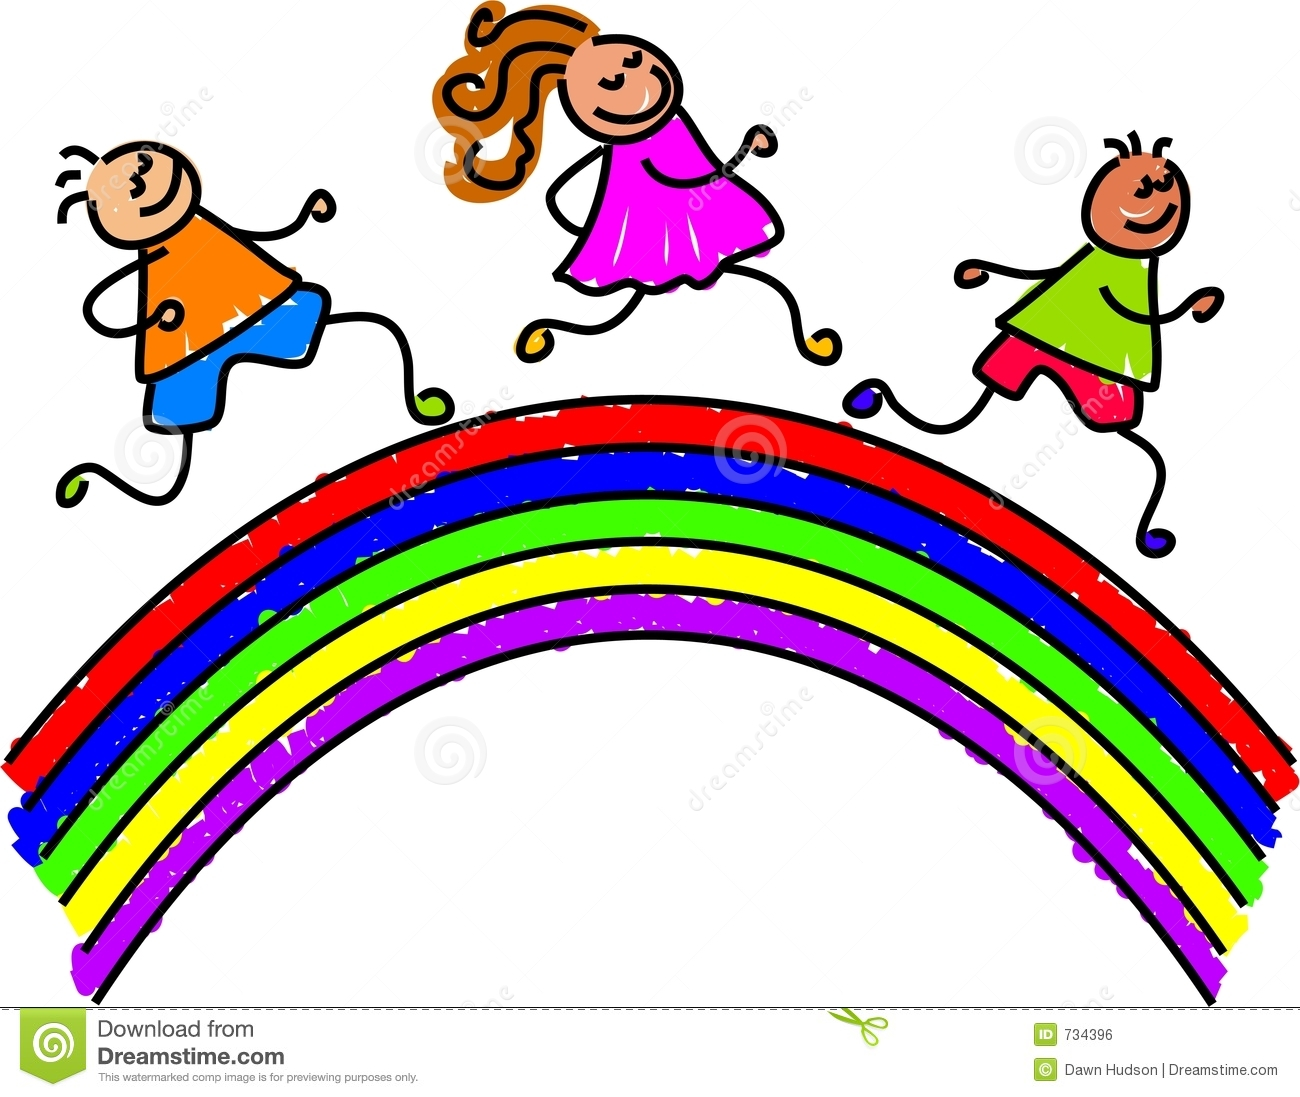 jpg download Rainbow clipart for kids. Panda free images